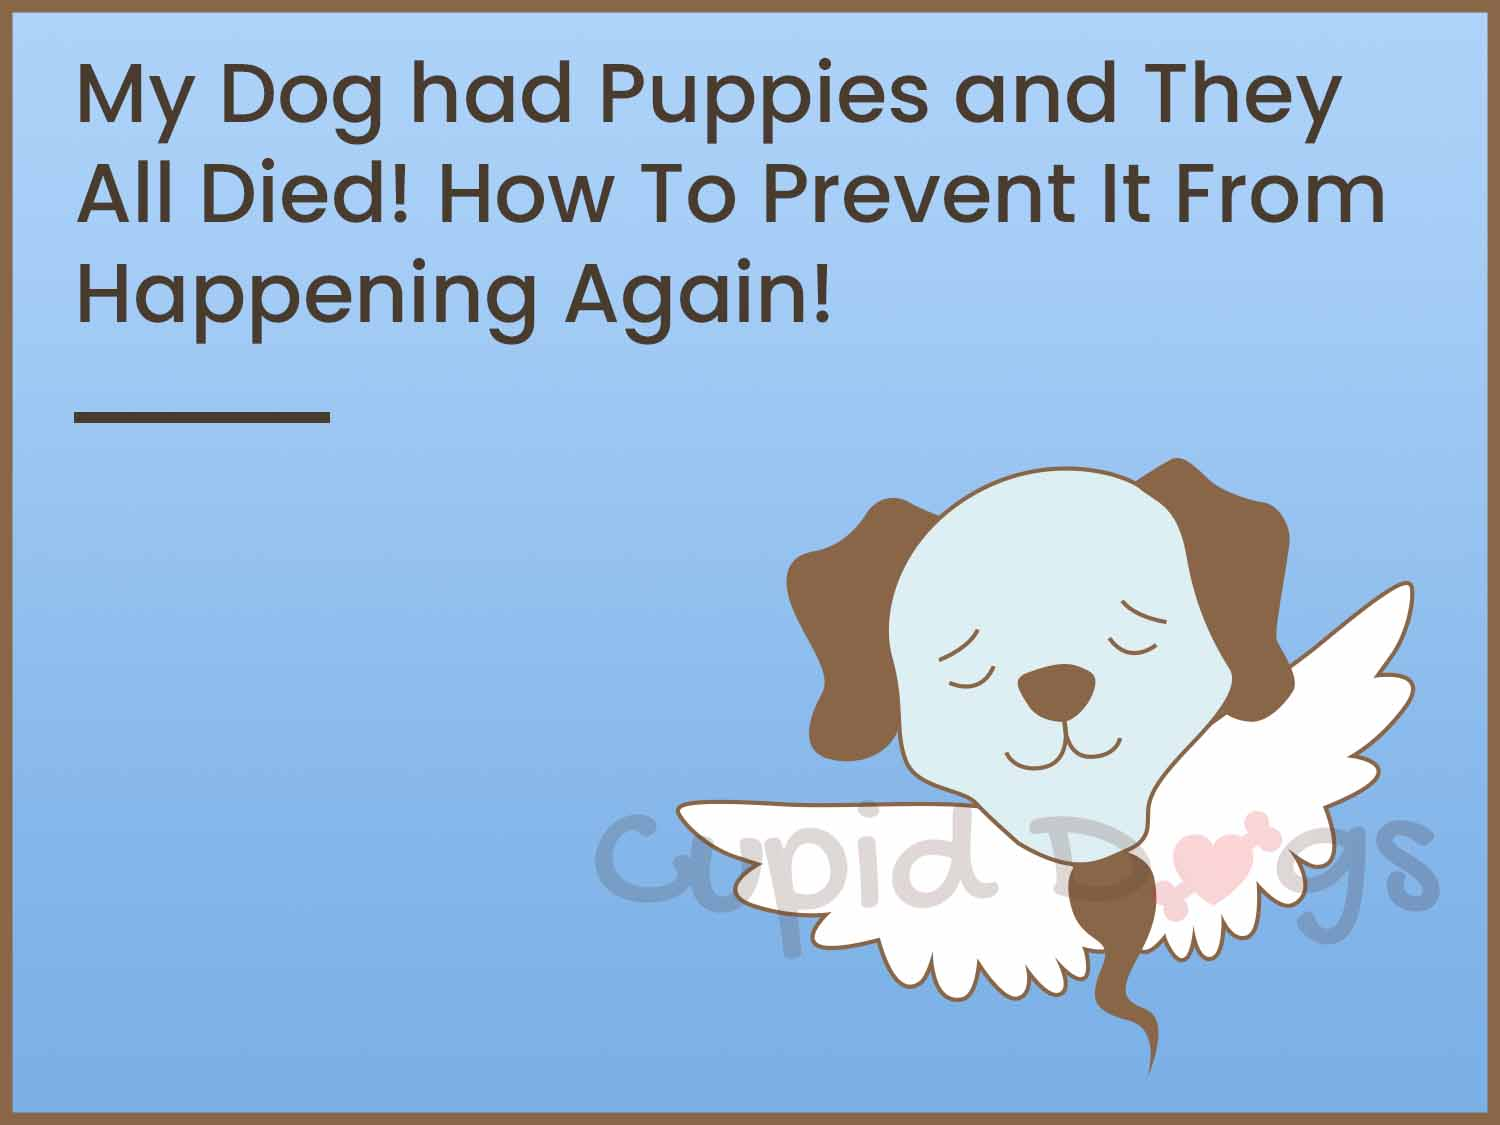 My Dog had Puppies and They All Died! How To Prevent It From Happening Again!